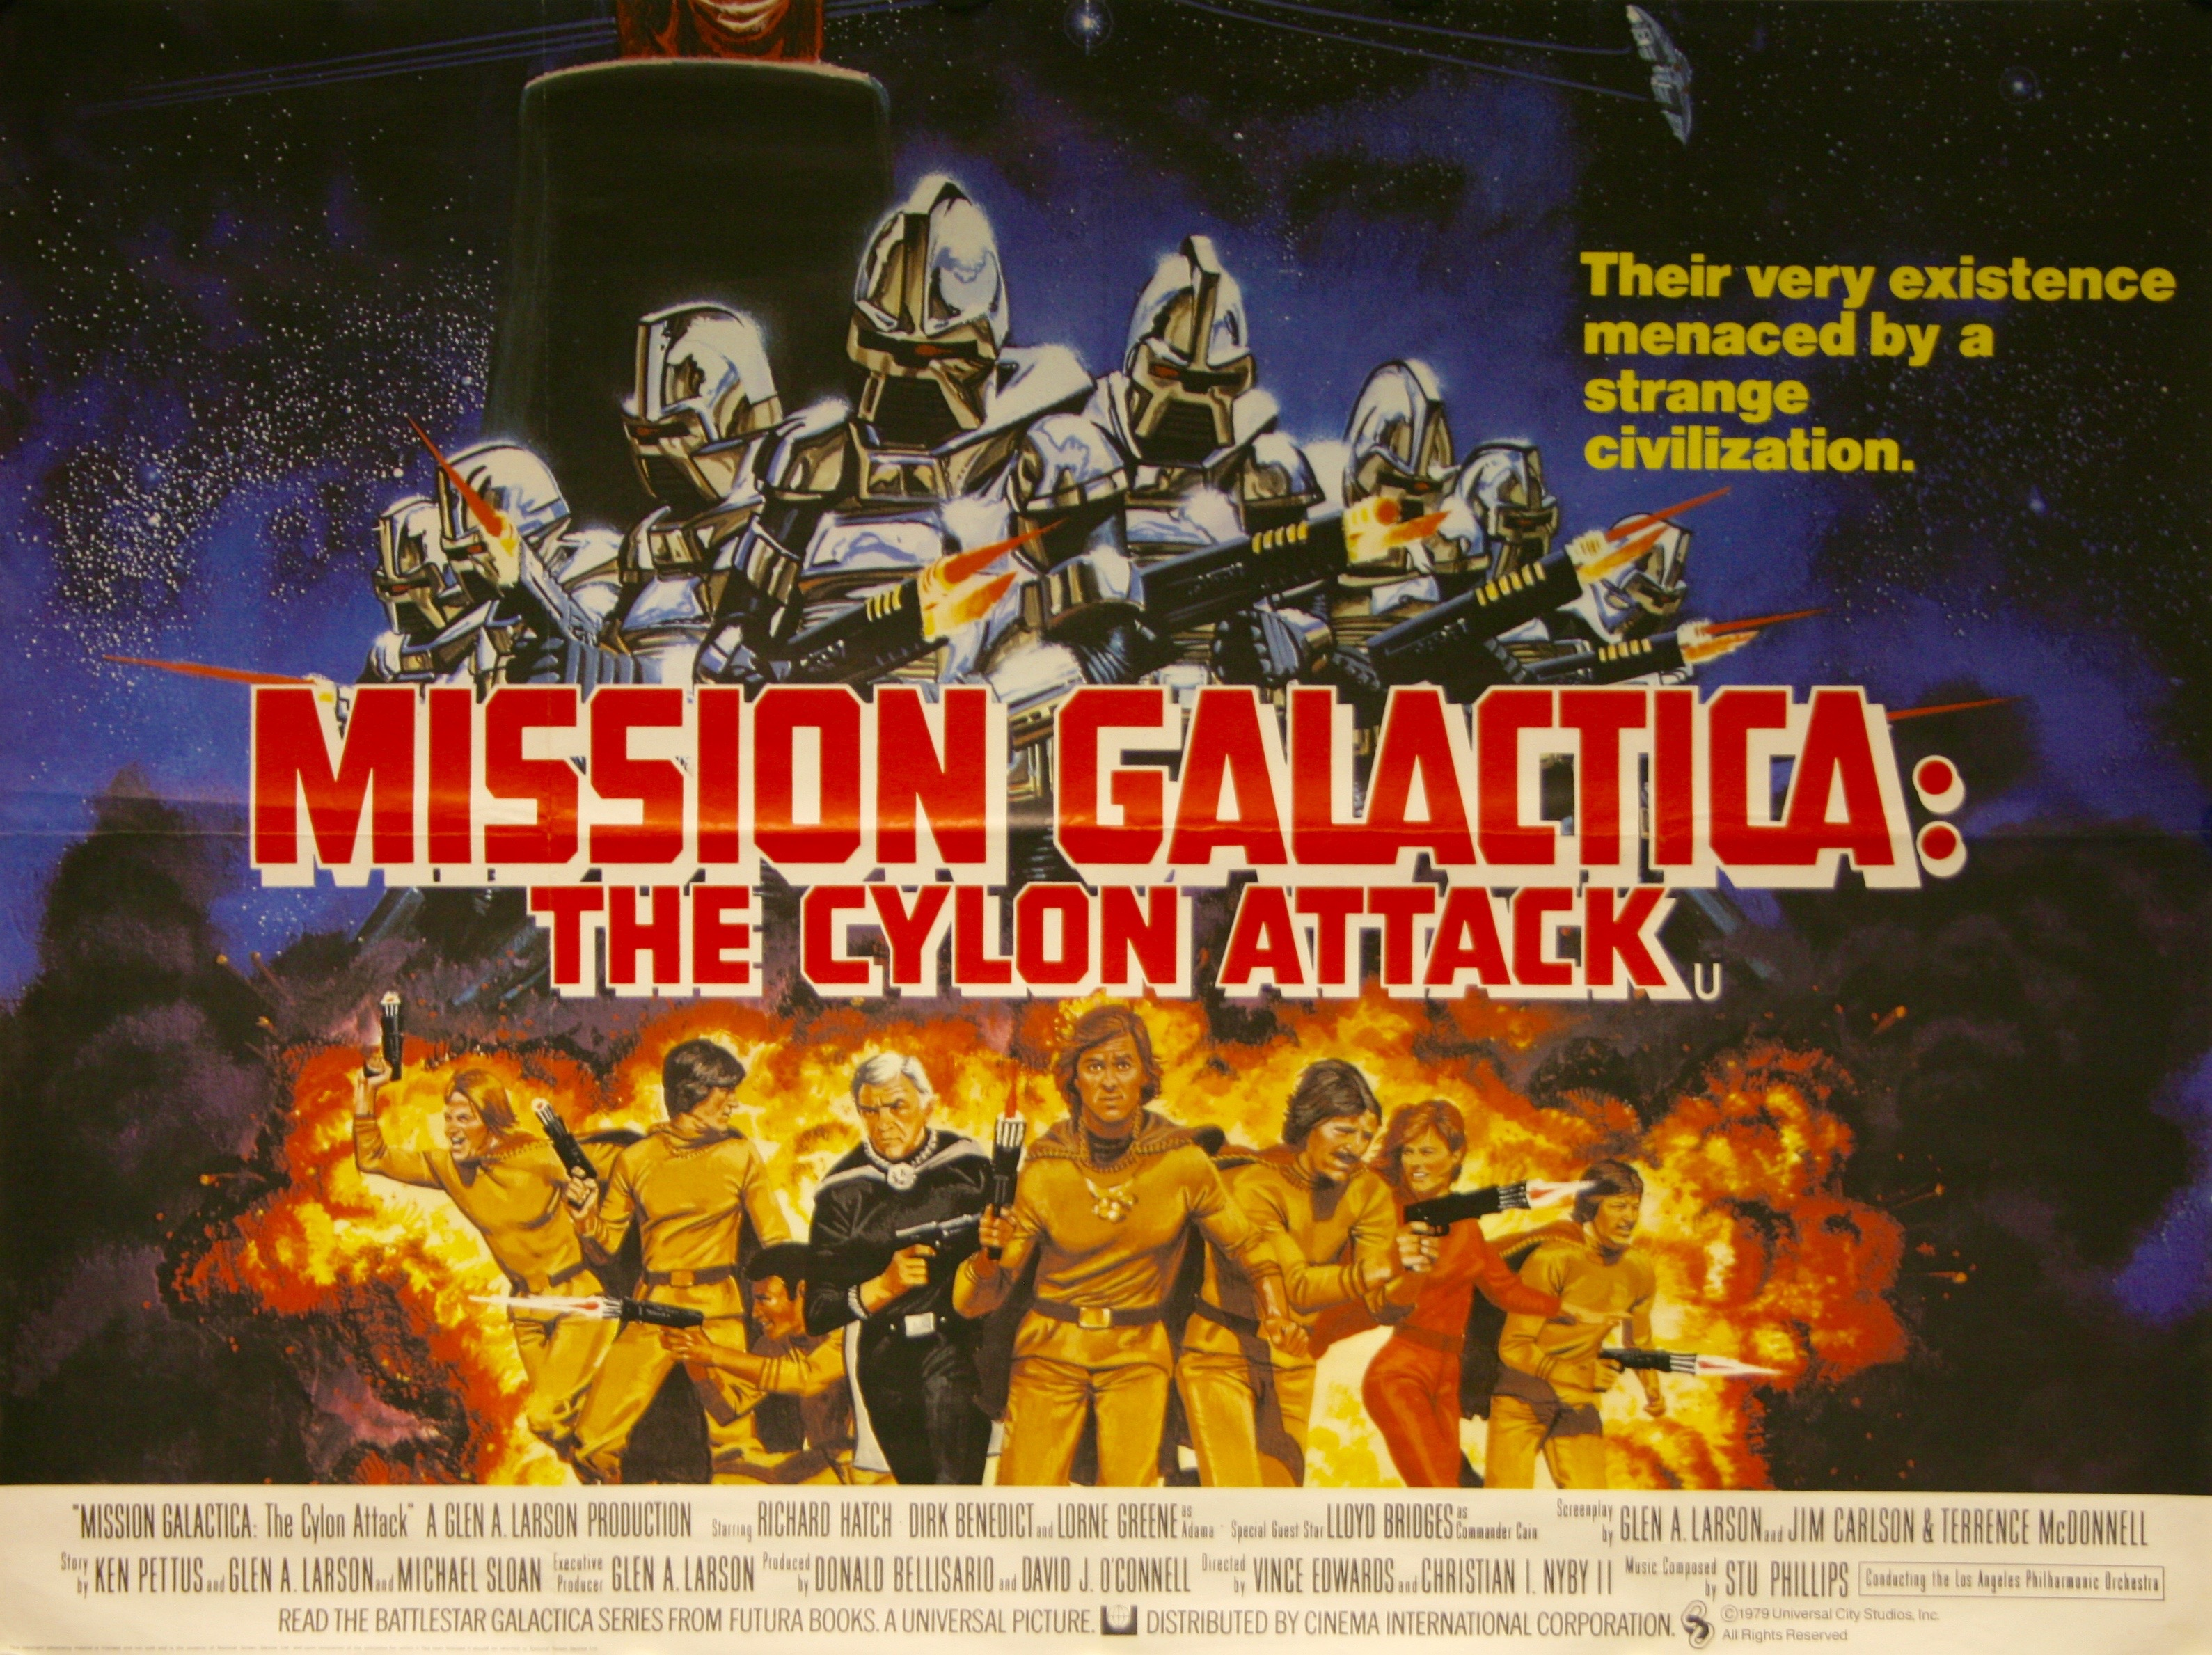 Mission Galactica The Cylon Attack Details